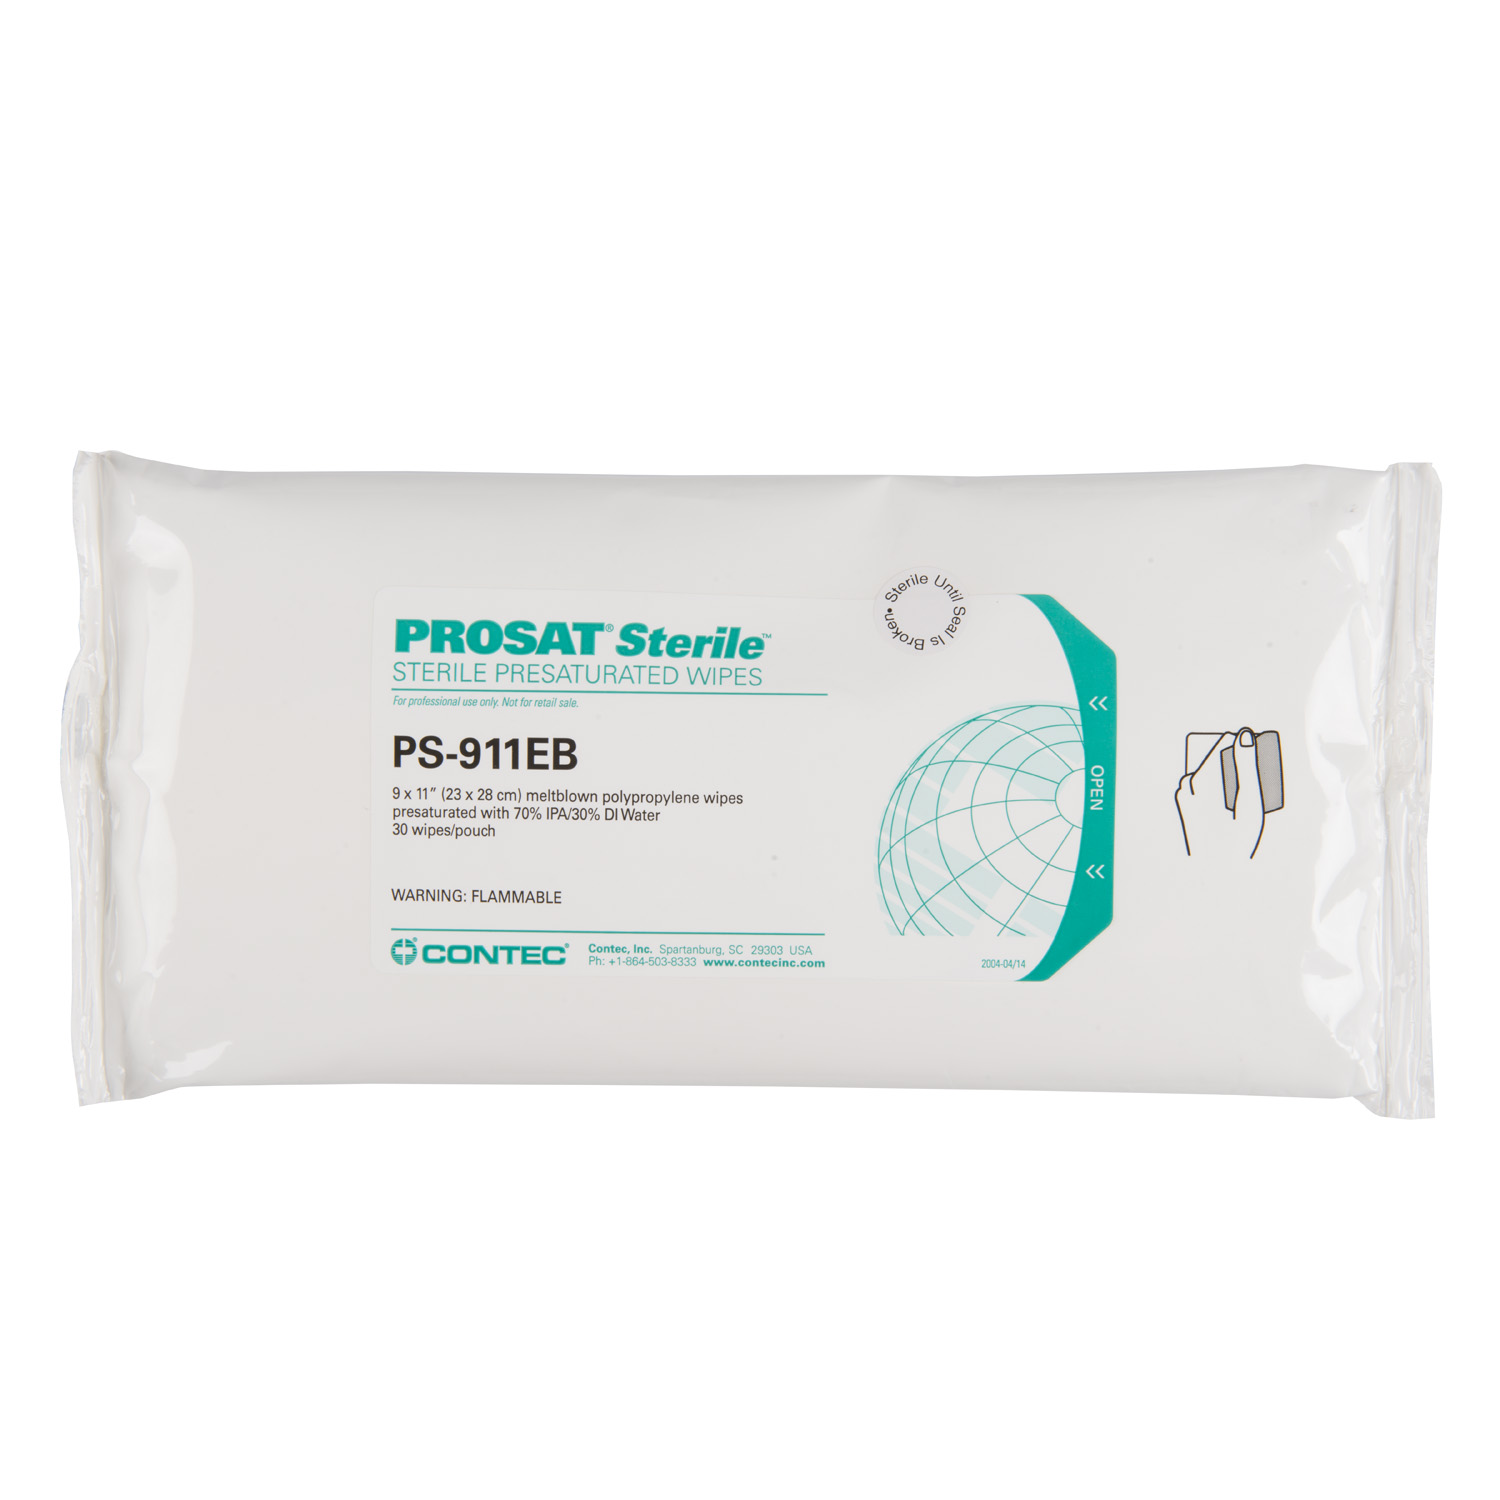 PROSAT® Sterile™ Meltblown Polypropylene Wipes (PS-911EB)